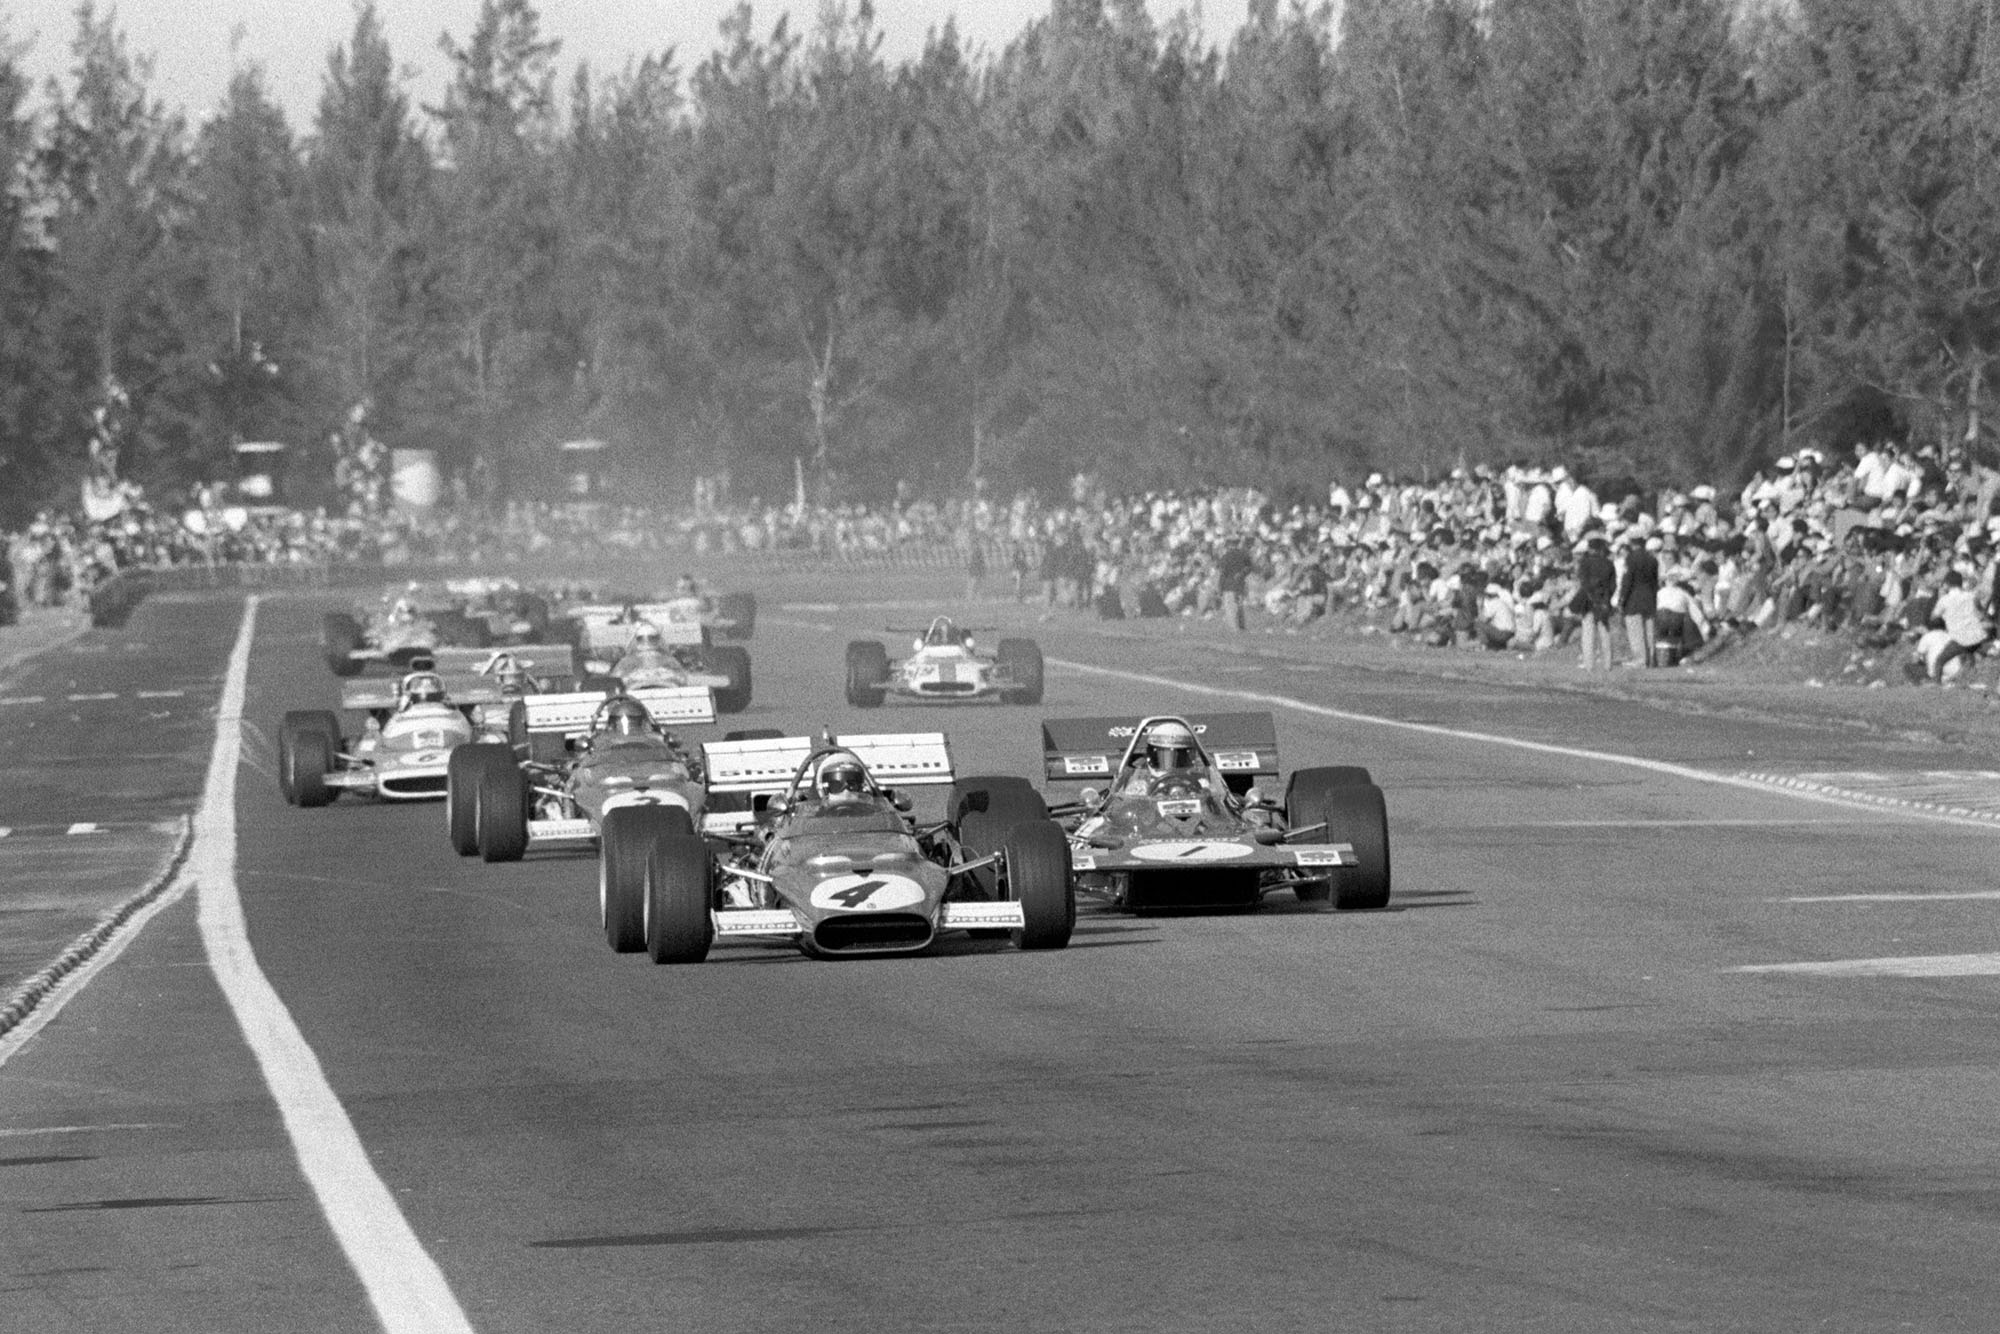 Clay Regazzoni's Ferrari leads the field on the opening lap of the Mexican Grand Prix.